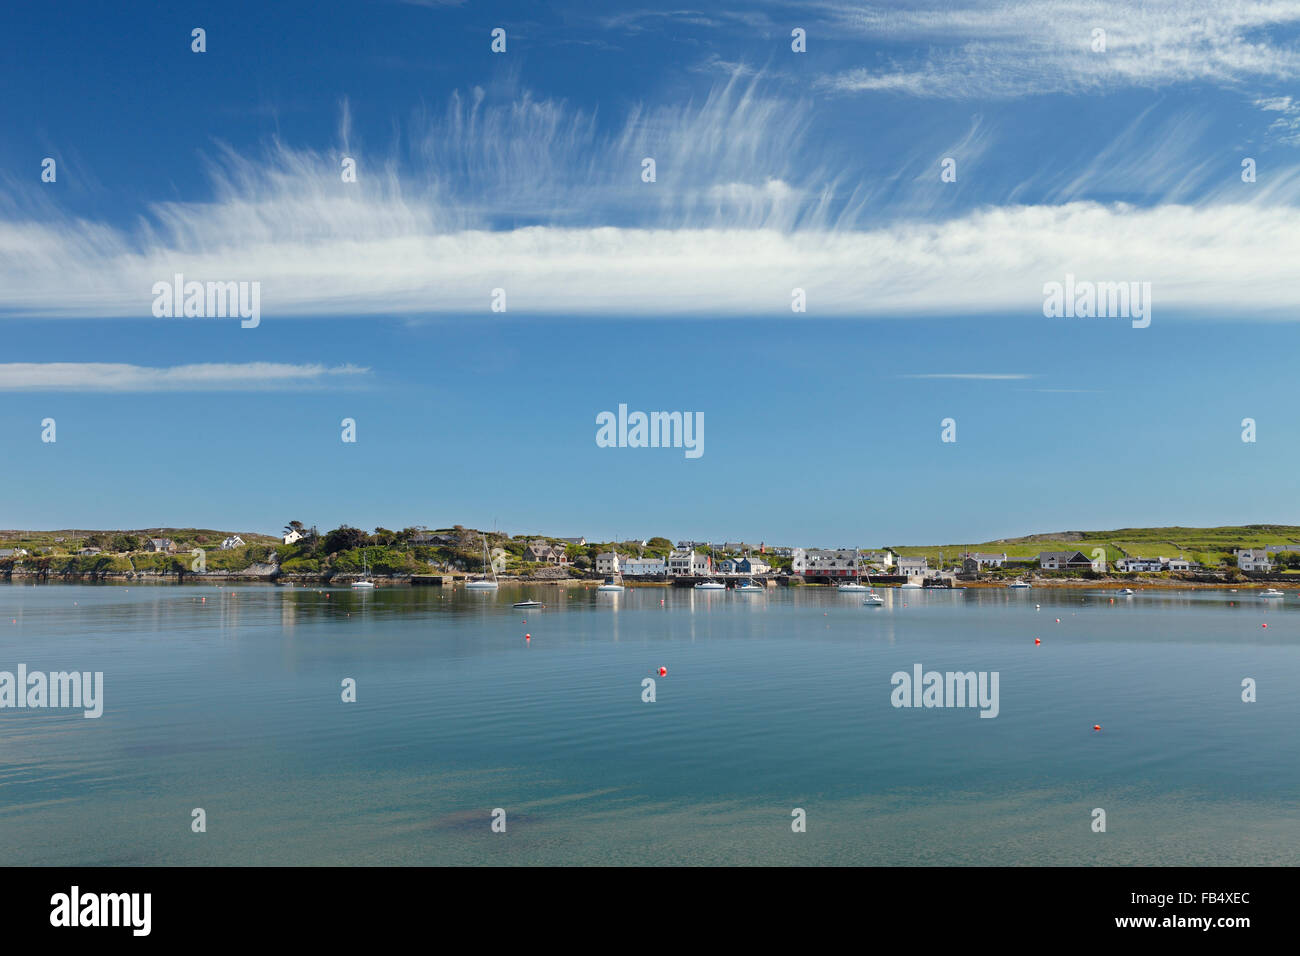 cirrus clouds above Crookhaven a vacation resort at the Crookhaven Bay on Mizen peninsula, County Cork, Ireland - Stock Image